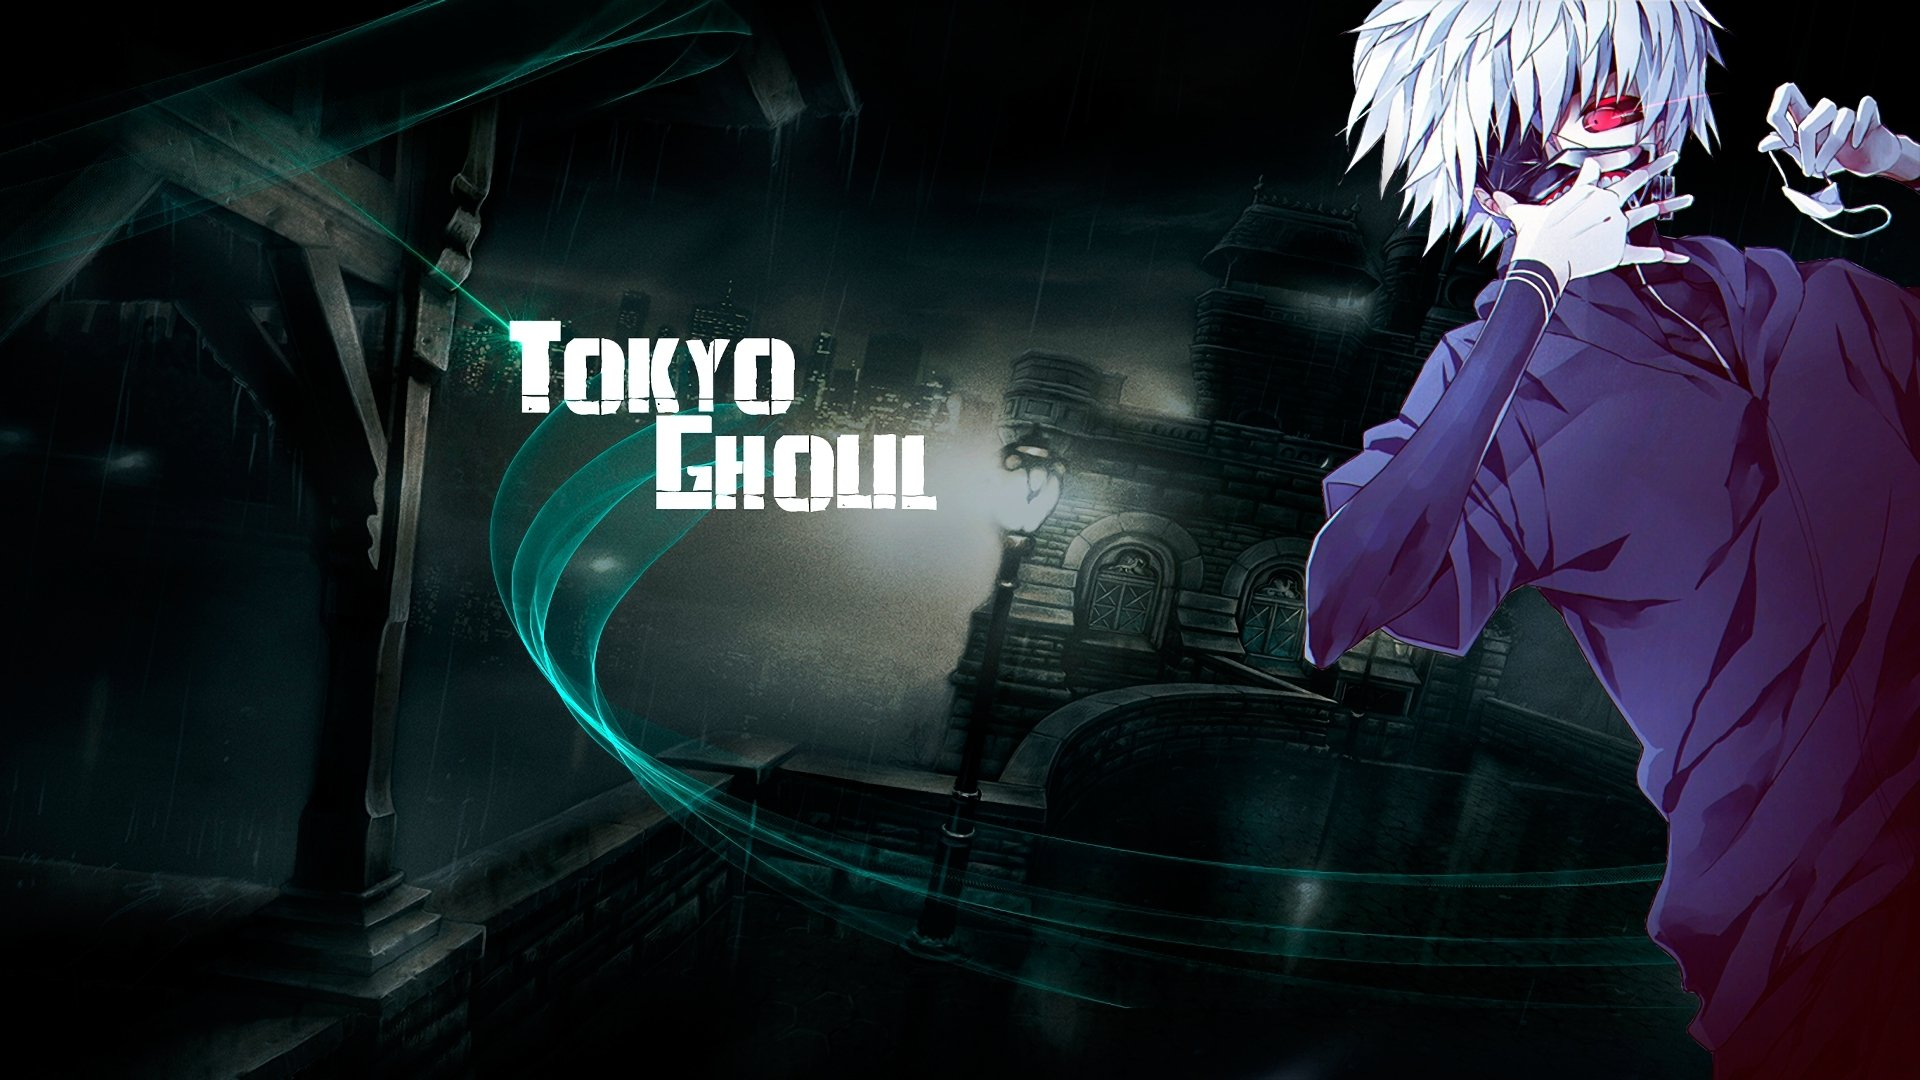 Naruto Live Wallpaper Iphone 7 Tokyo Ghoul Hd Wallpaper Background Image 1920x1080